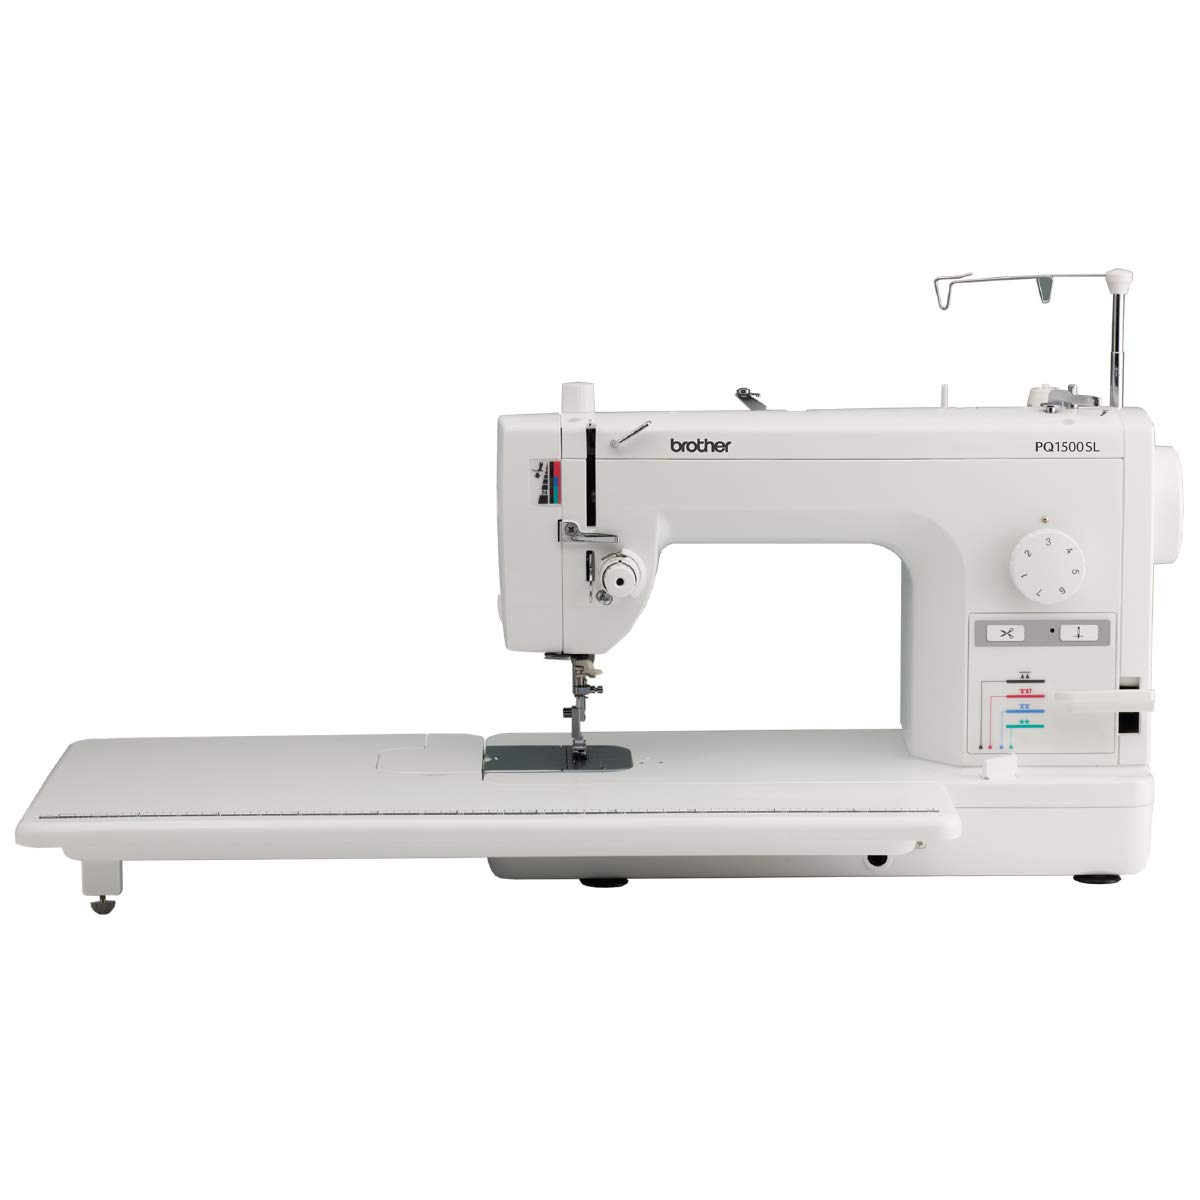 Brother PQ1500SL Sewing and Quilting Machine, Up to 1,500 Stitches Per Minute, Wide Table, 7 Included Feet